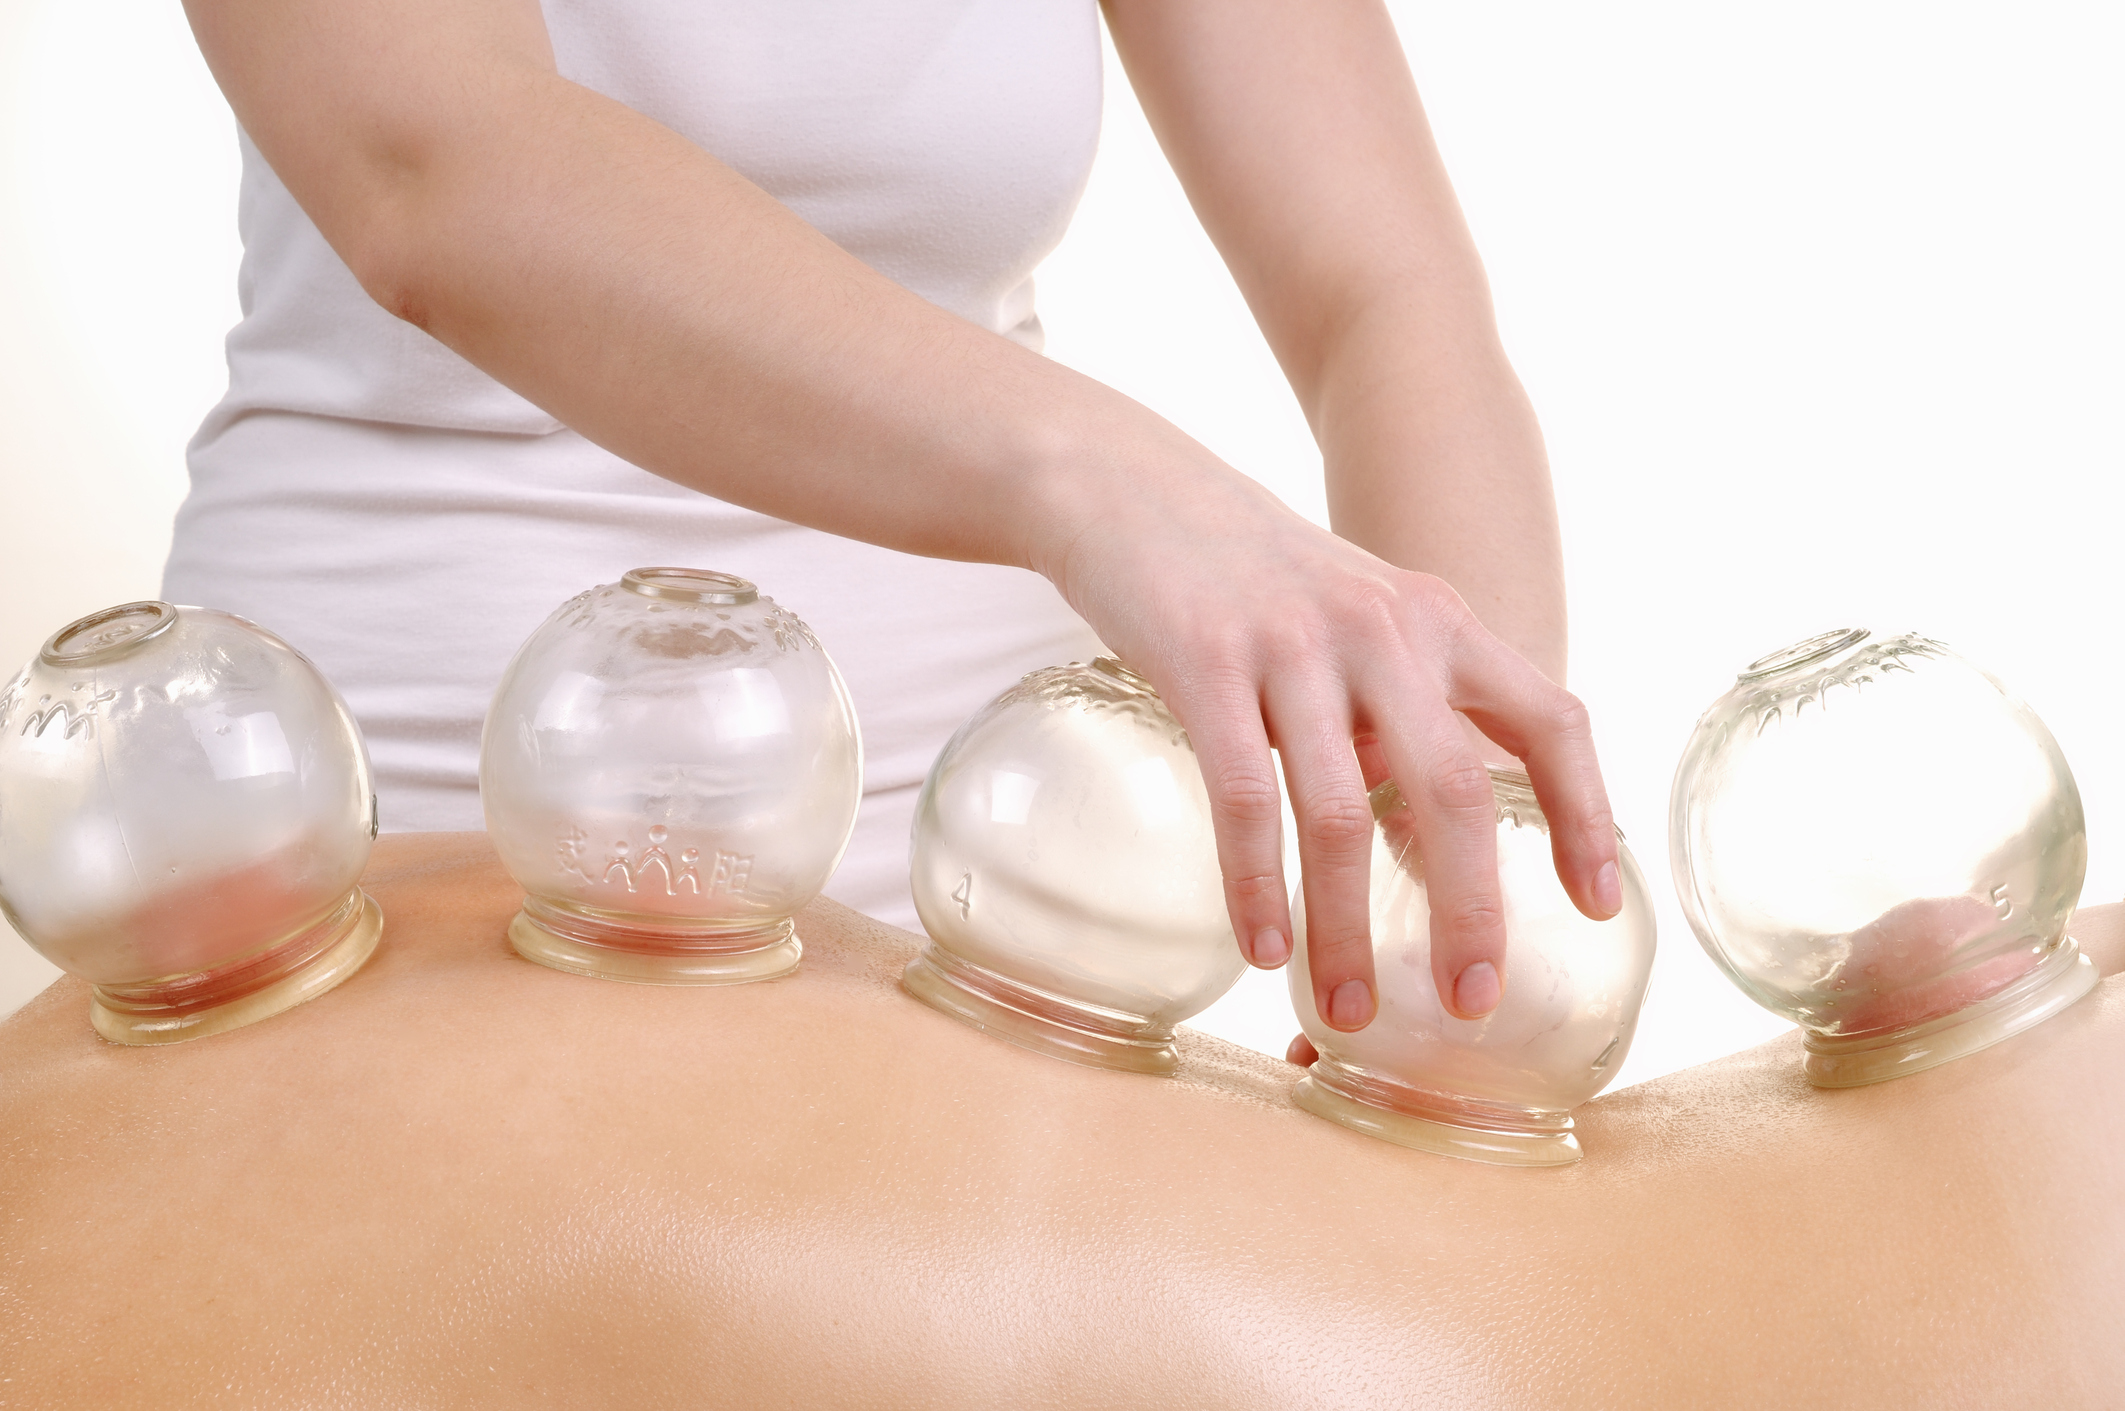 Cupping Therapy - Cupping is a therapy that complements an acupuncture treatment.  Suction cups placed at various points on the body create a vacuum that draws toxins to the surface of the skin to be released.  The effect of this is to encourage the flow of blood in the area beneath the cup.  Cupping therapy removes local congestion and increases the blood circulation to the areas that were originally poorly supplied and thereby relieves the symptoms of numbness and aching pain.